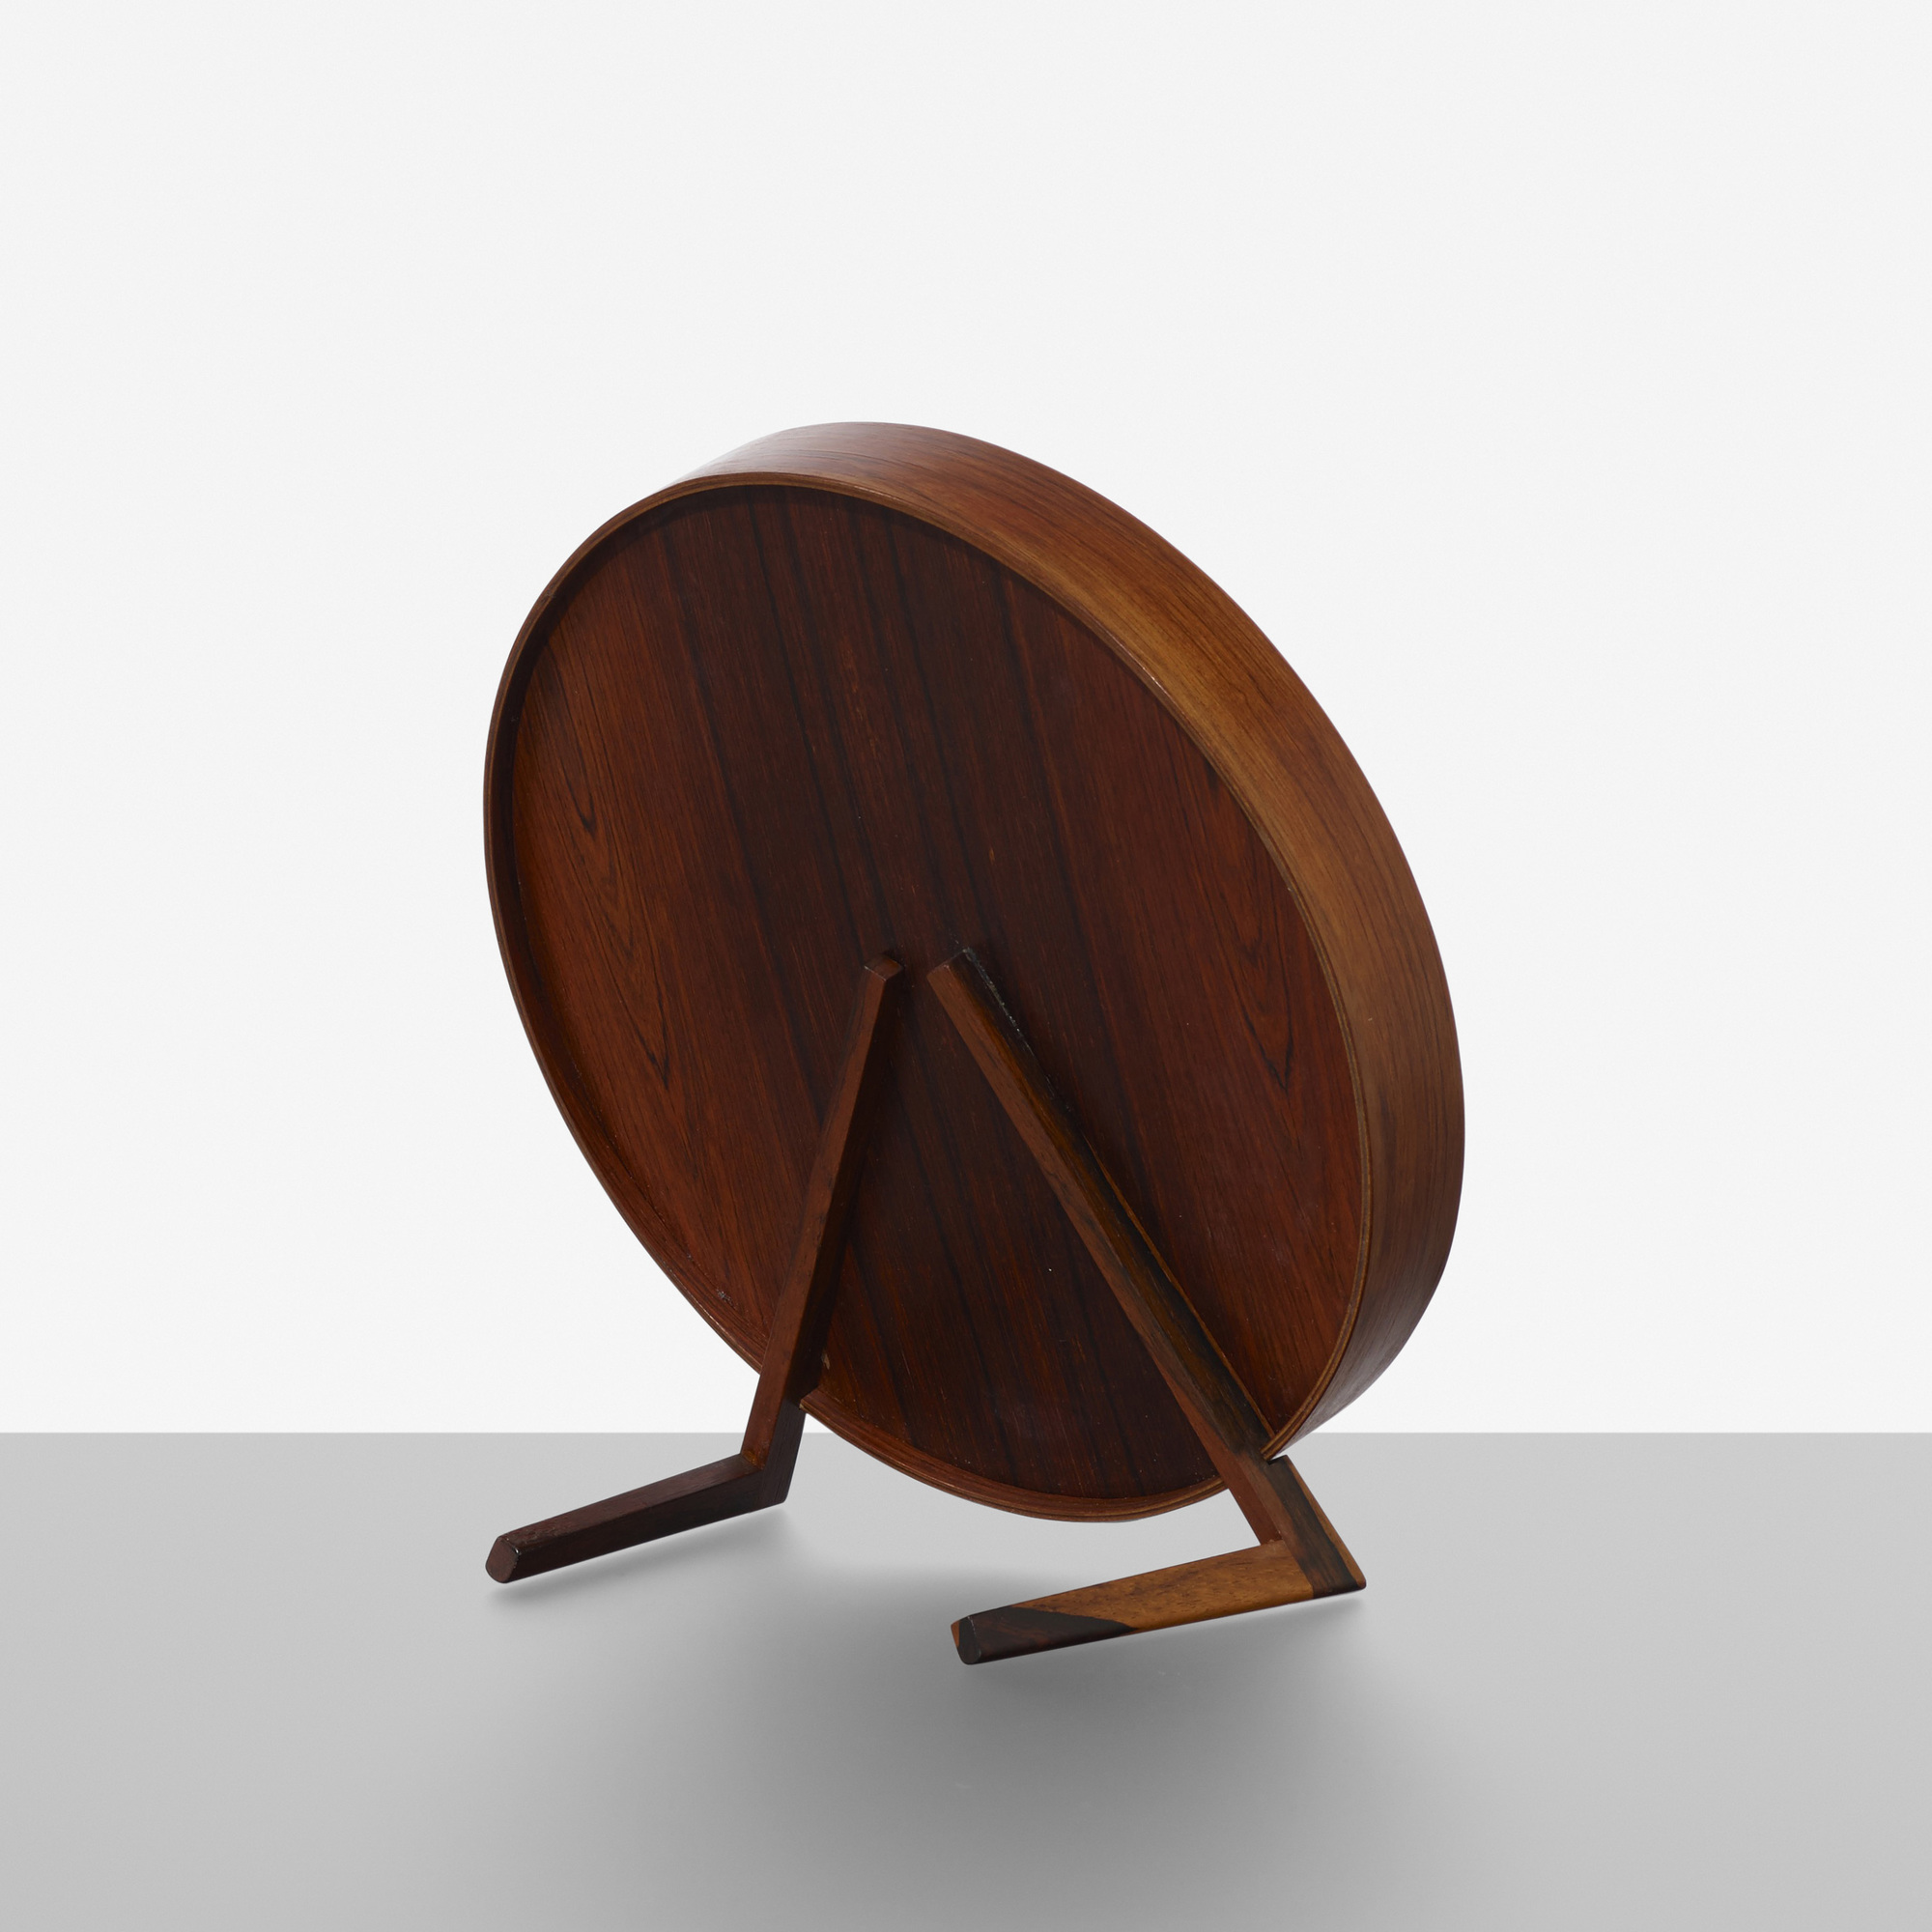 221: Nils Troed / table mirror (2 of 2)